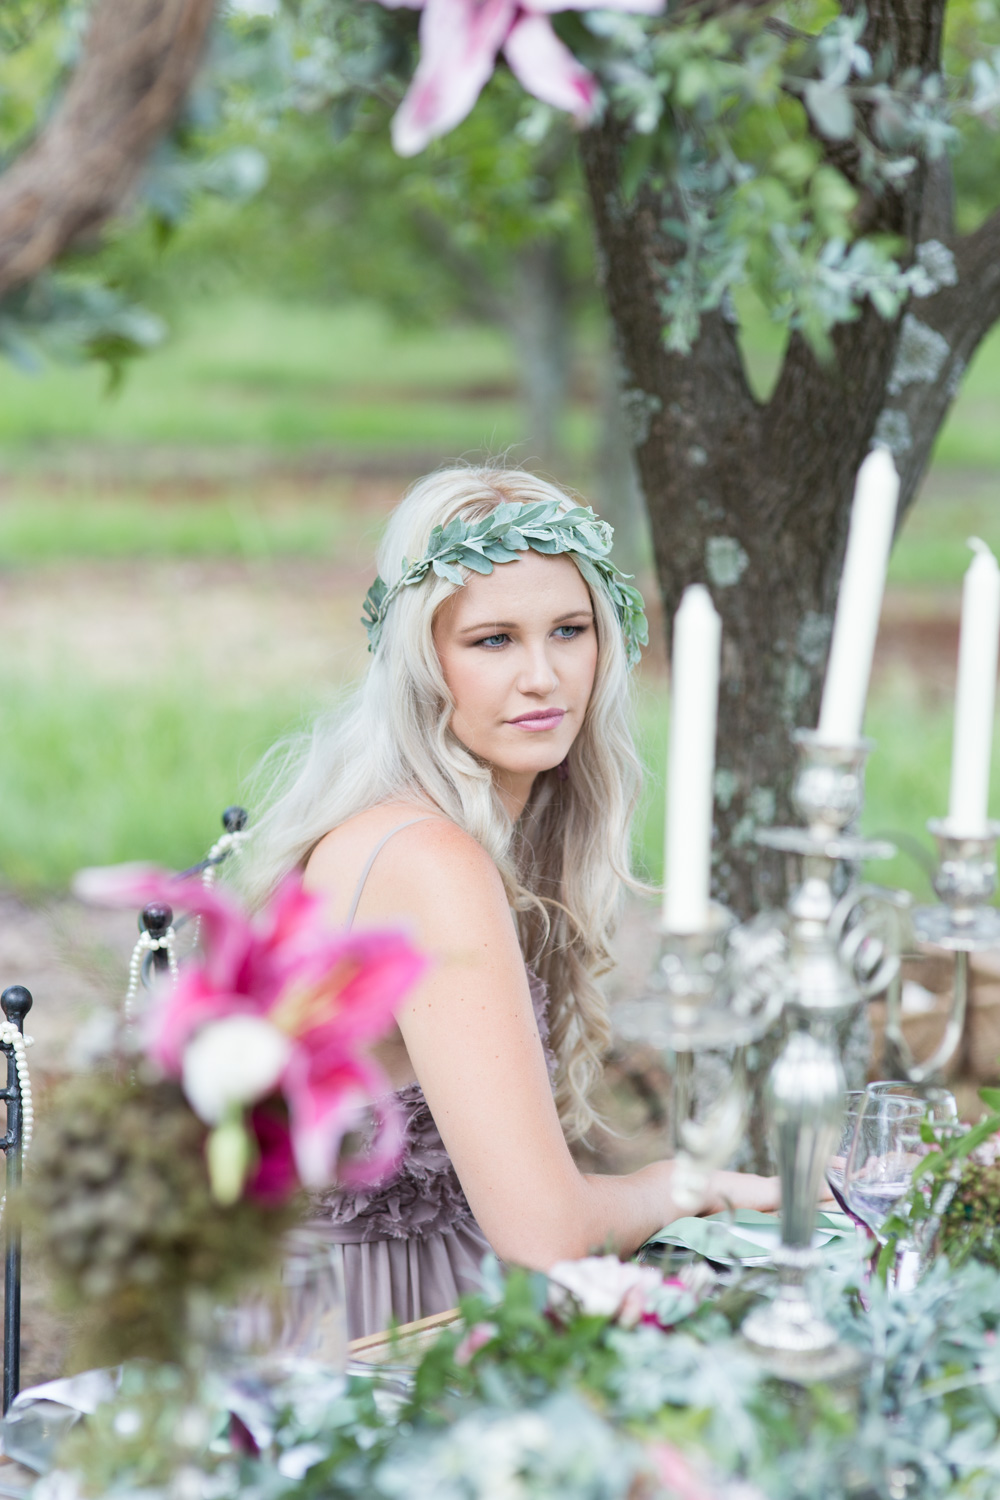 Shokran pretoria wedding venue shoot061.jpg